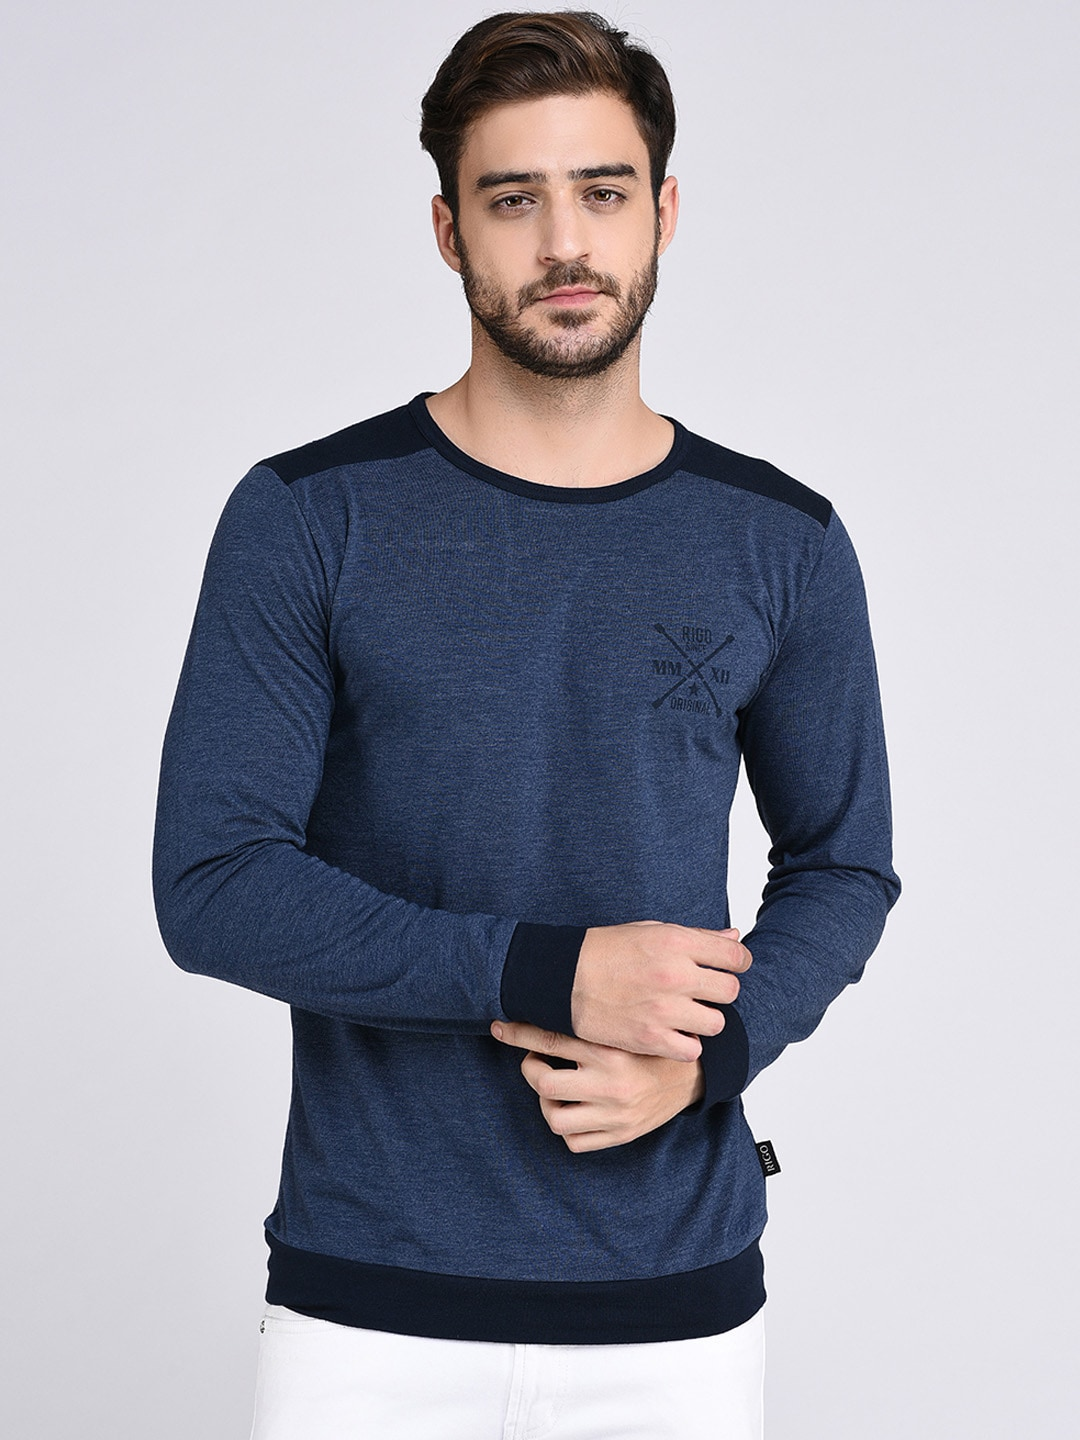 8614ef13a0a788 Rigo Men Blue Solid Round Neck T-shirt